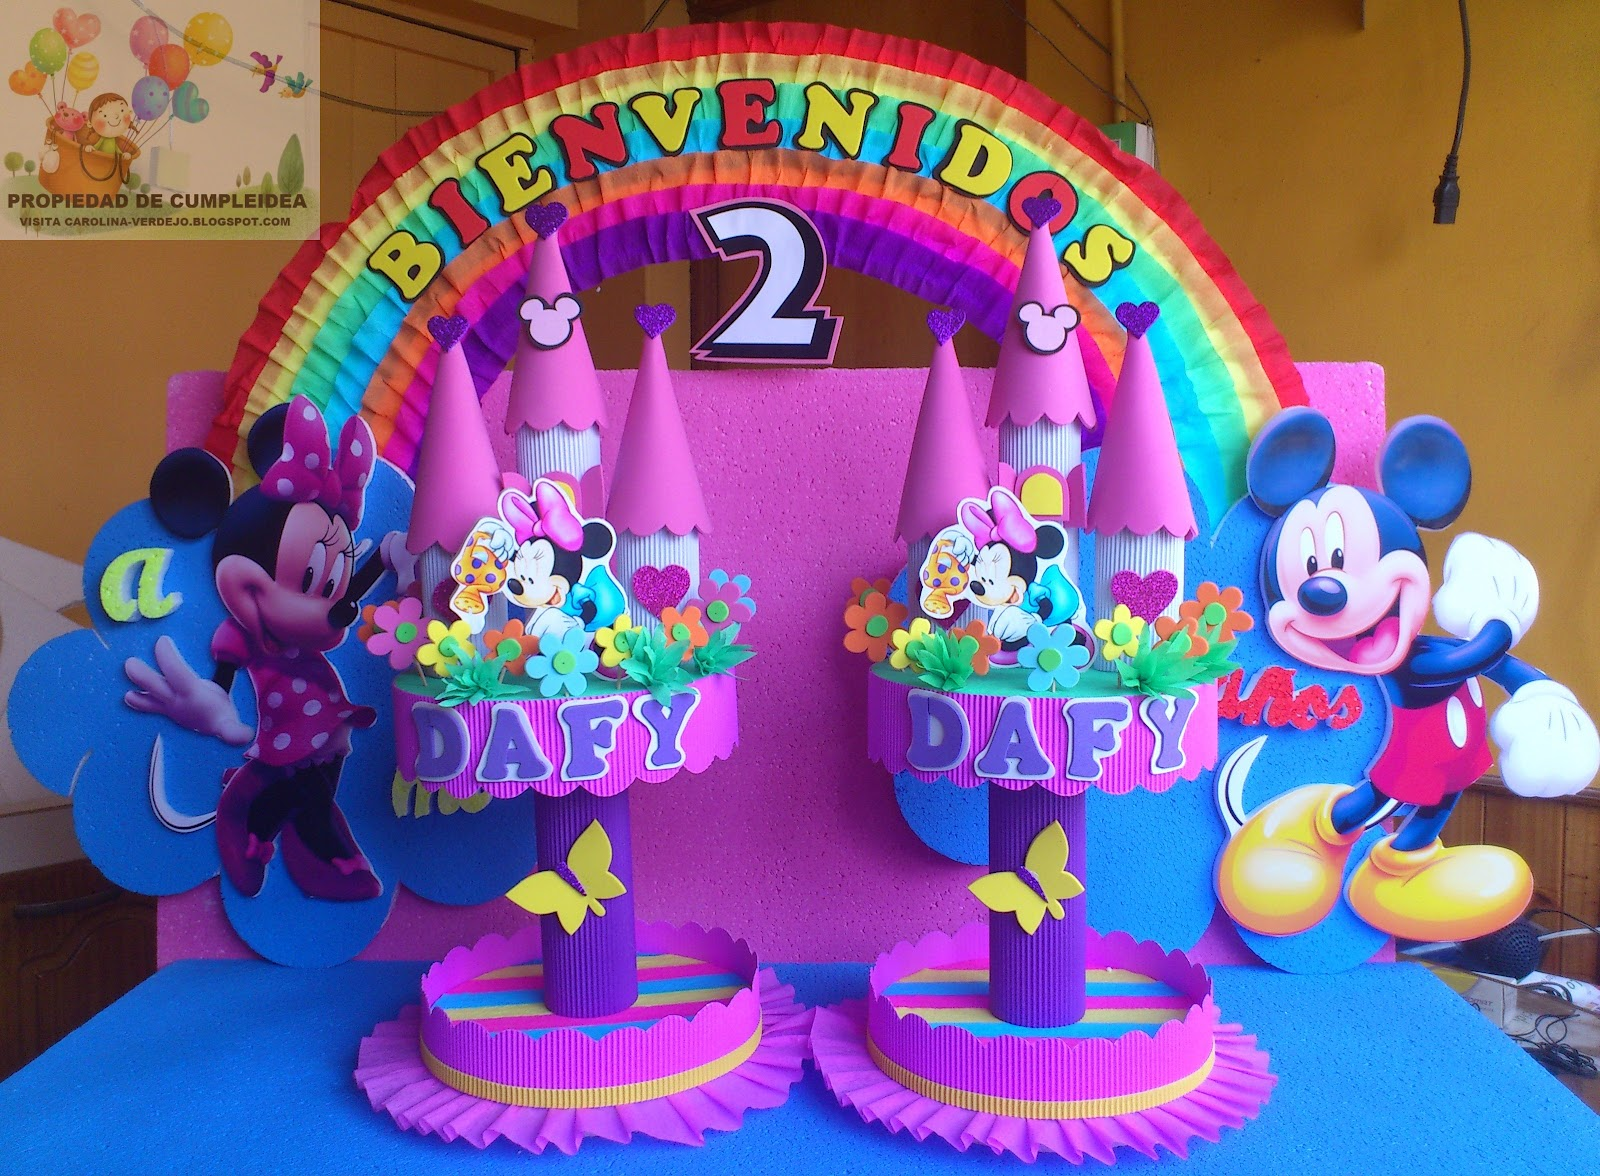 Pin decoraciones infantiles mickey mouse on pinterest for Decoraciones infantiles